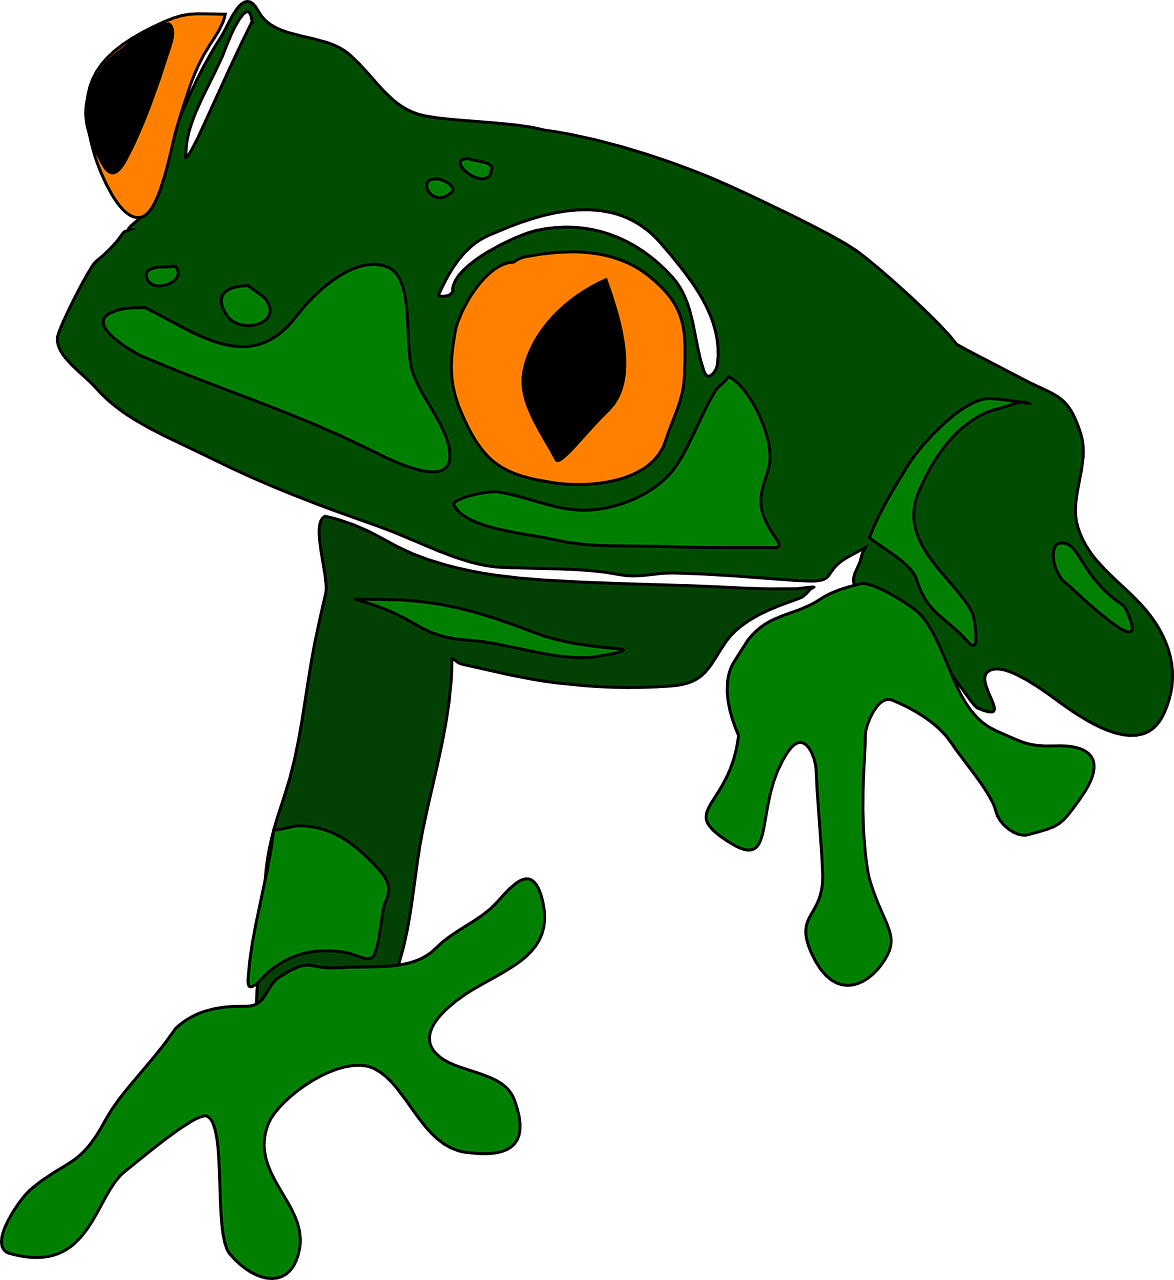 Frog Images Free For Commercial Use